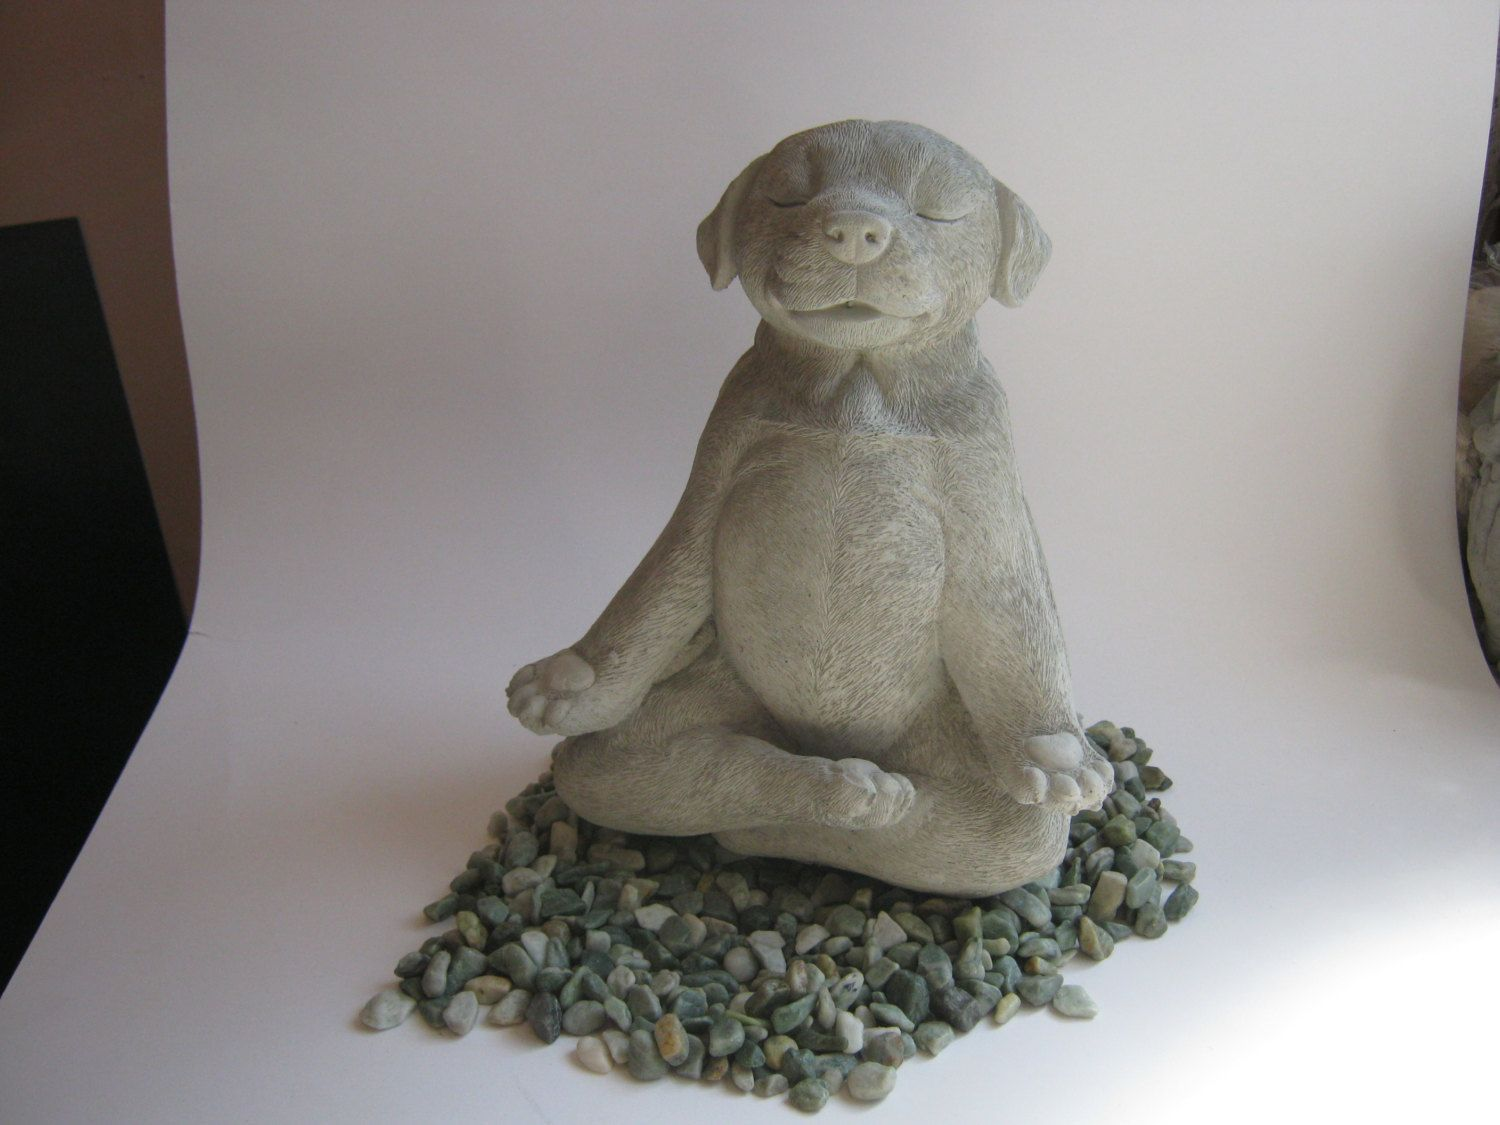 Dog Statue, Buddha Dog, Meditating Dog Statue, Zen Cement